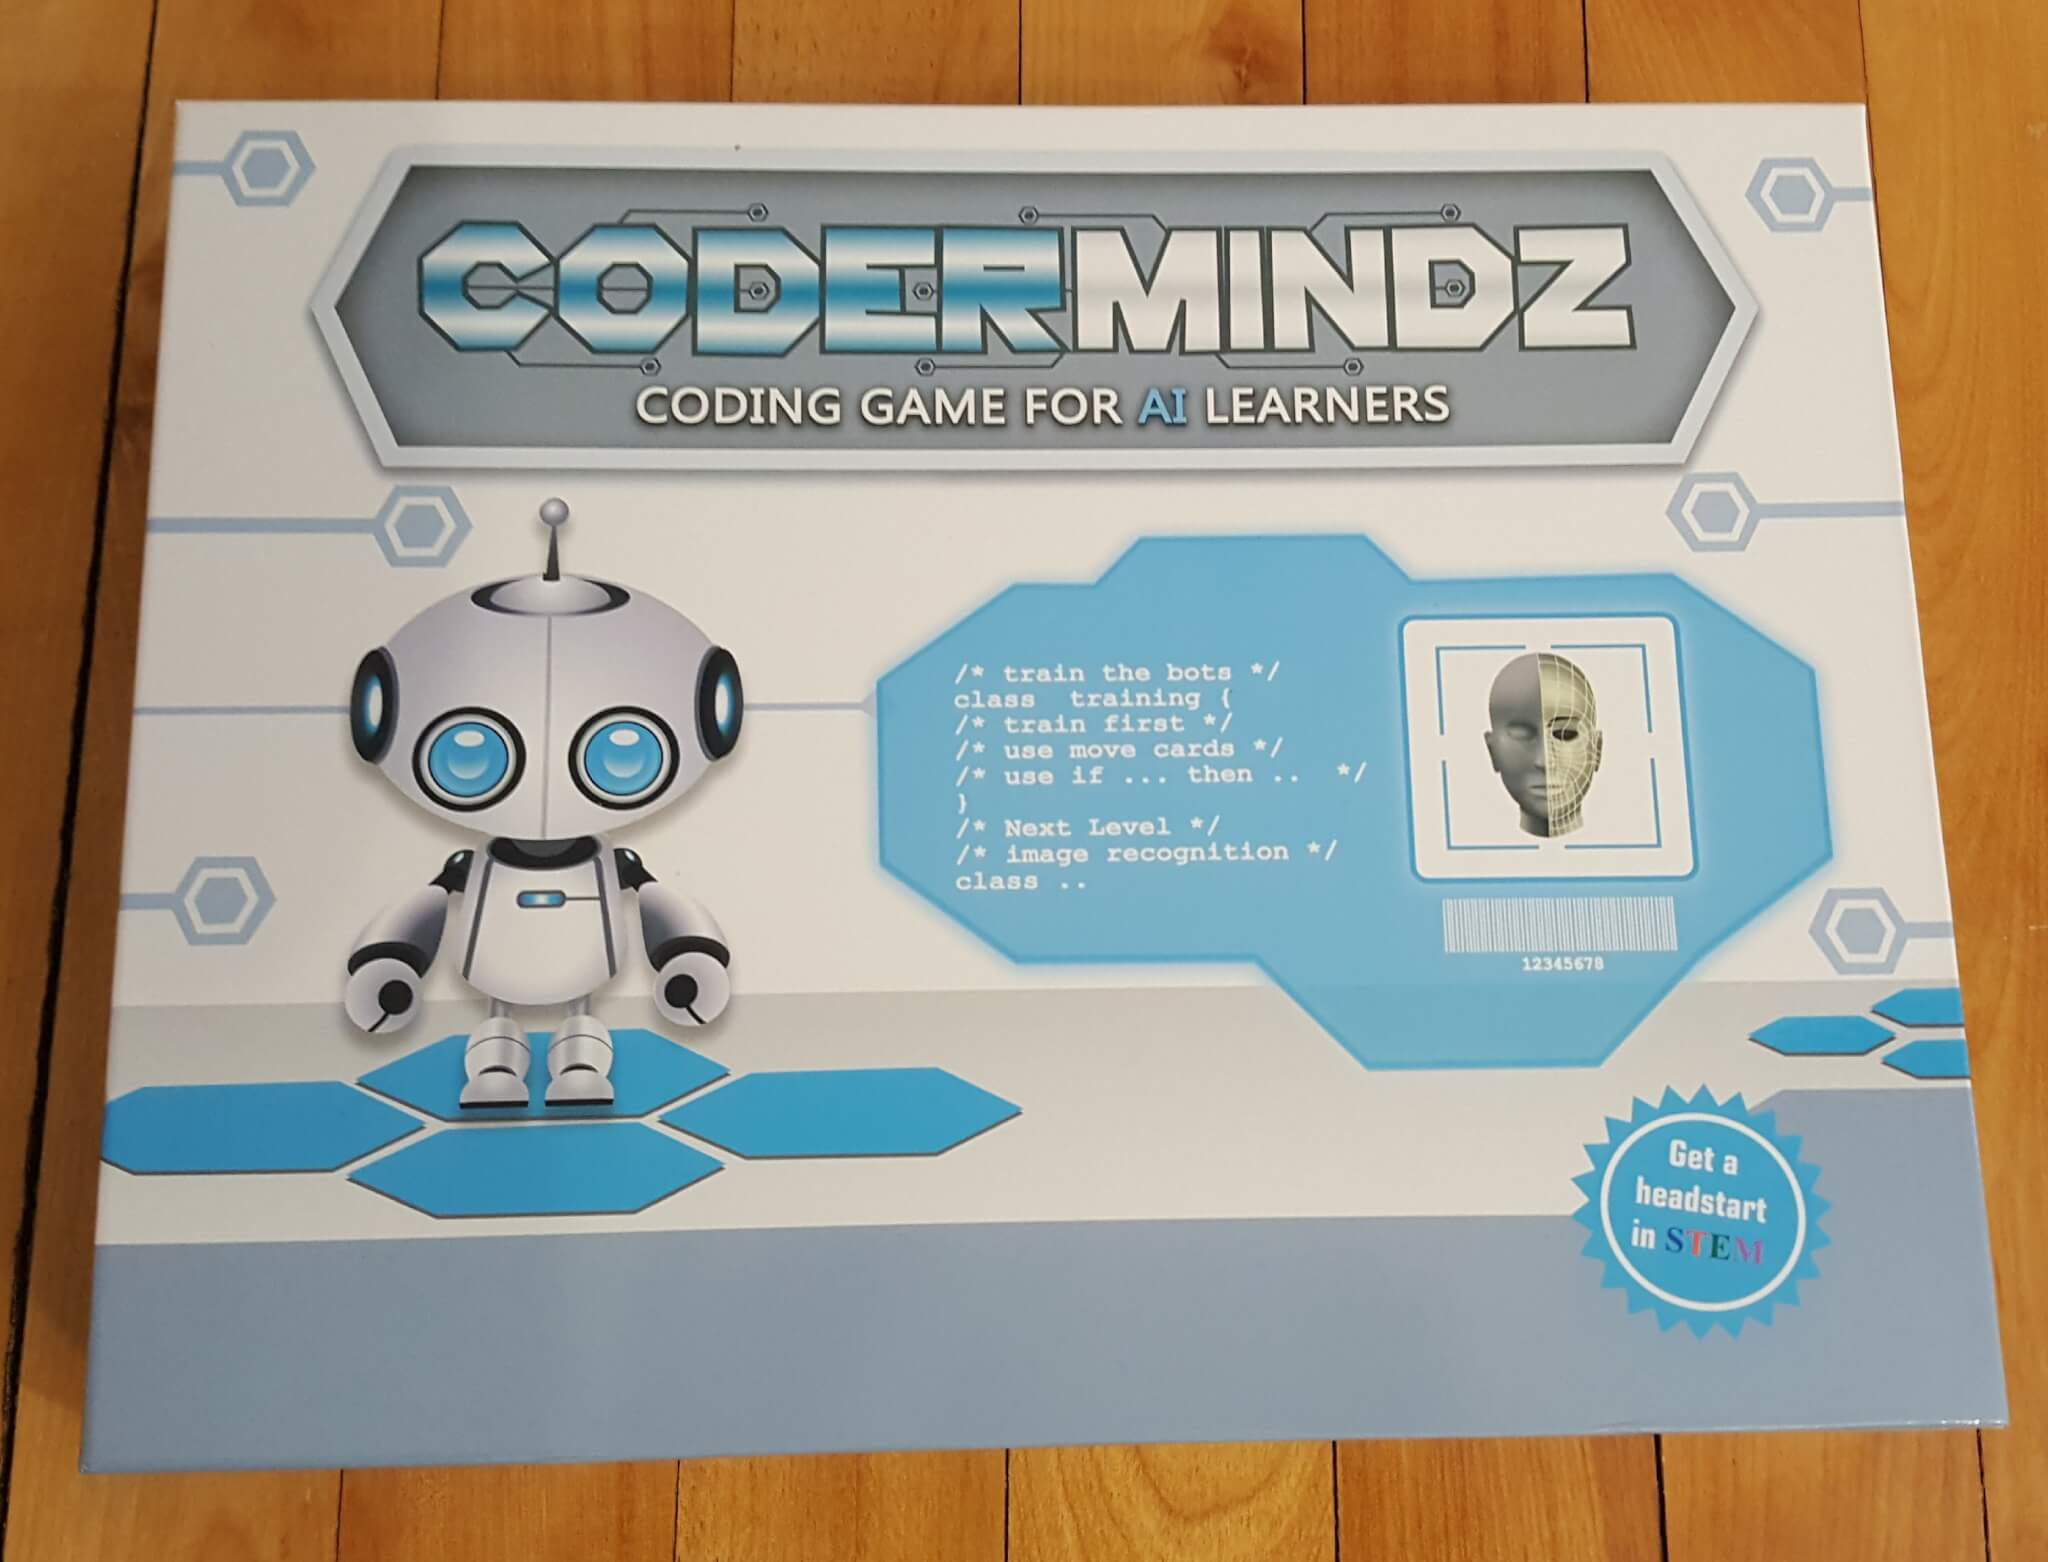 Family Board Game Review: Coder Mindz